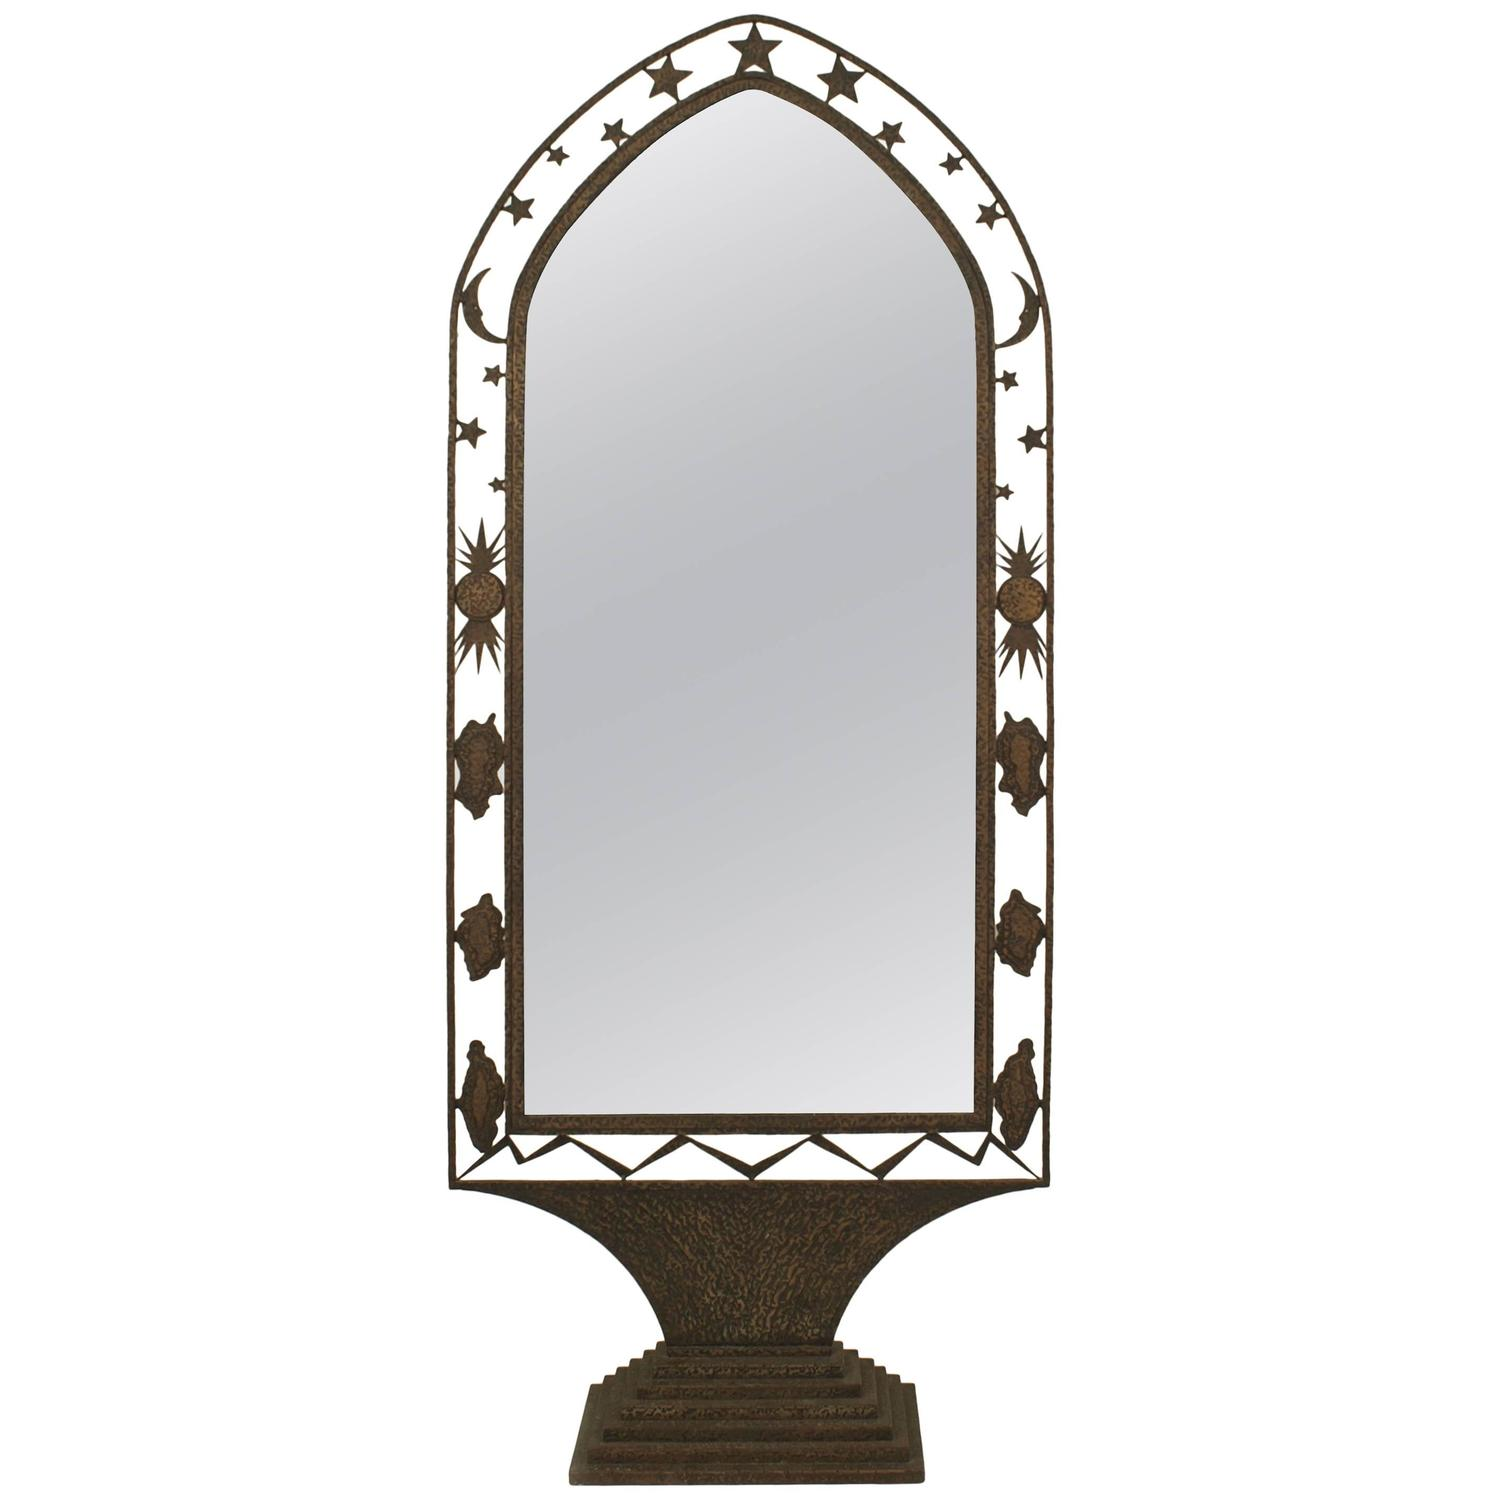 French art deco wrought iron cheval mirror for sale at 1stdibs for Floor length mirror for sale